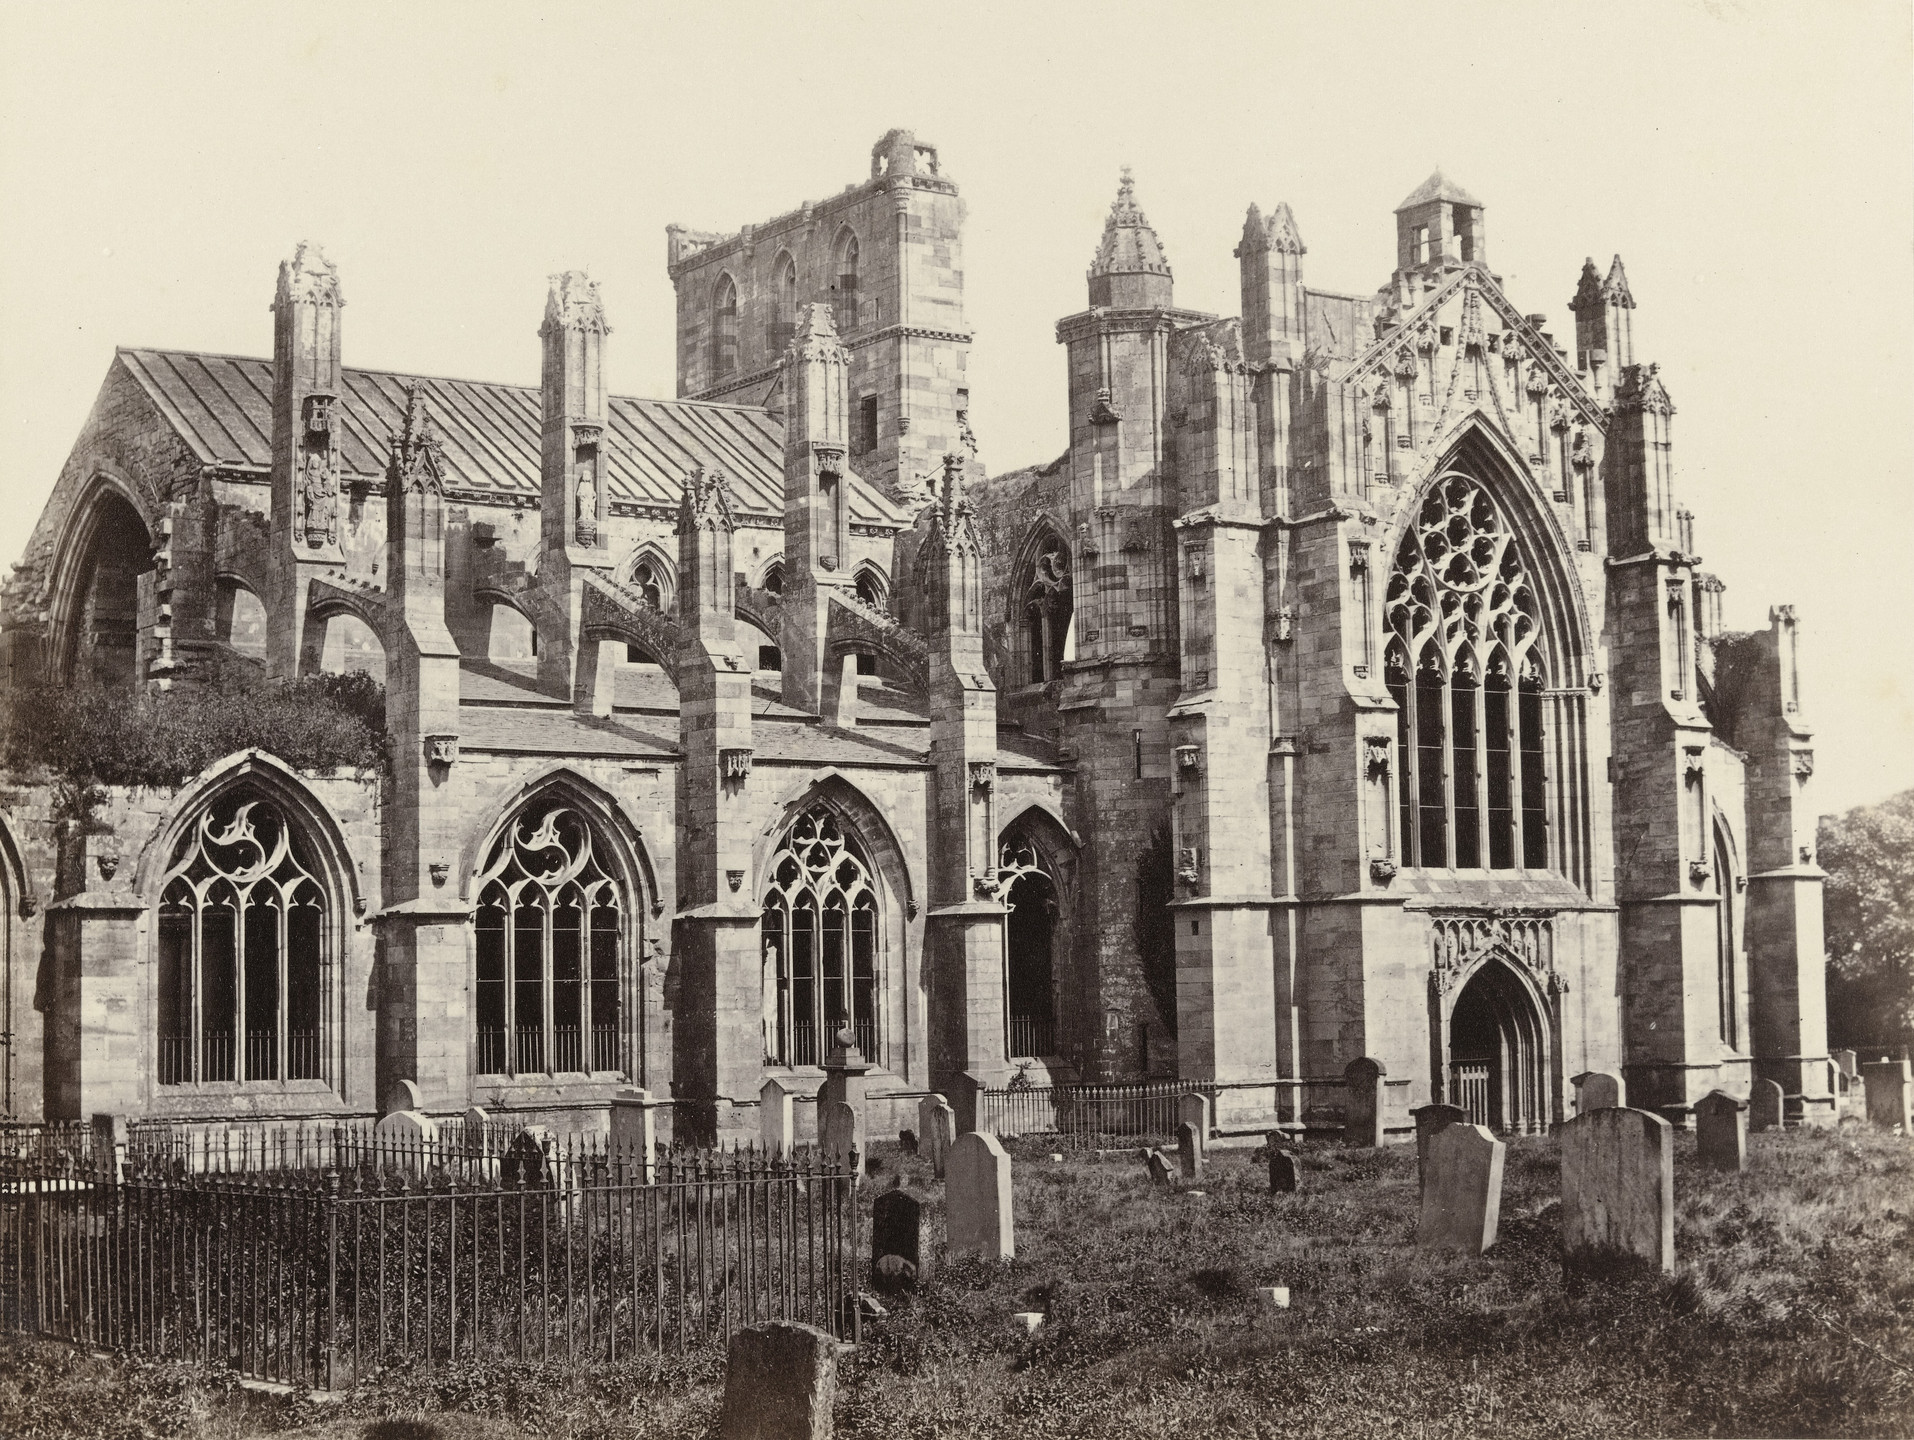 Francis Frith. Melrose Abbey. c. 1860